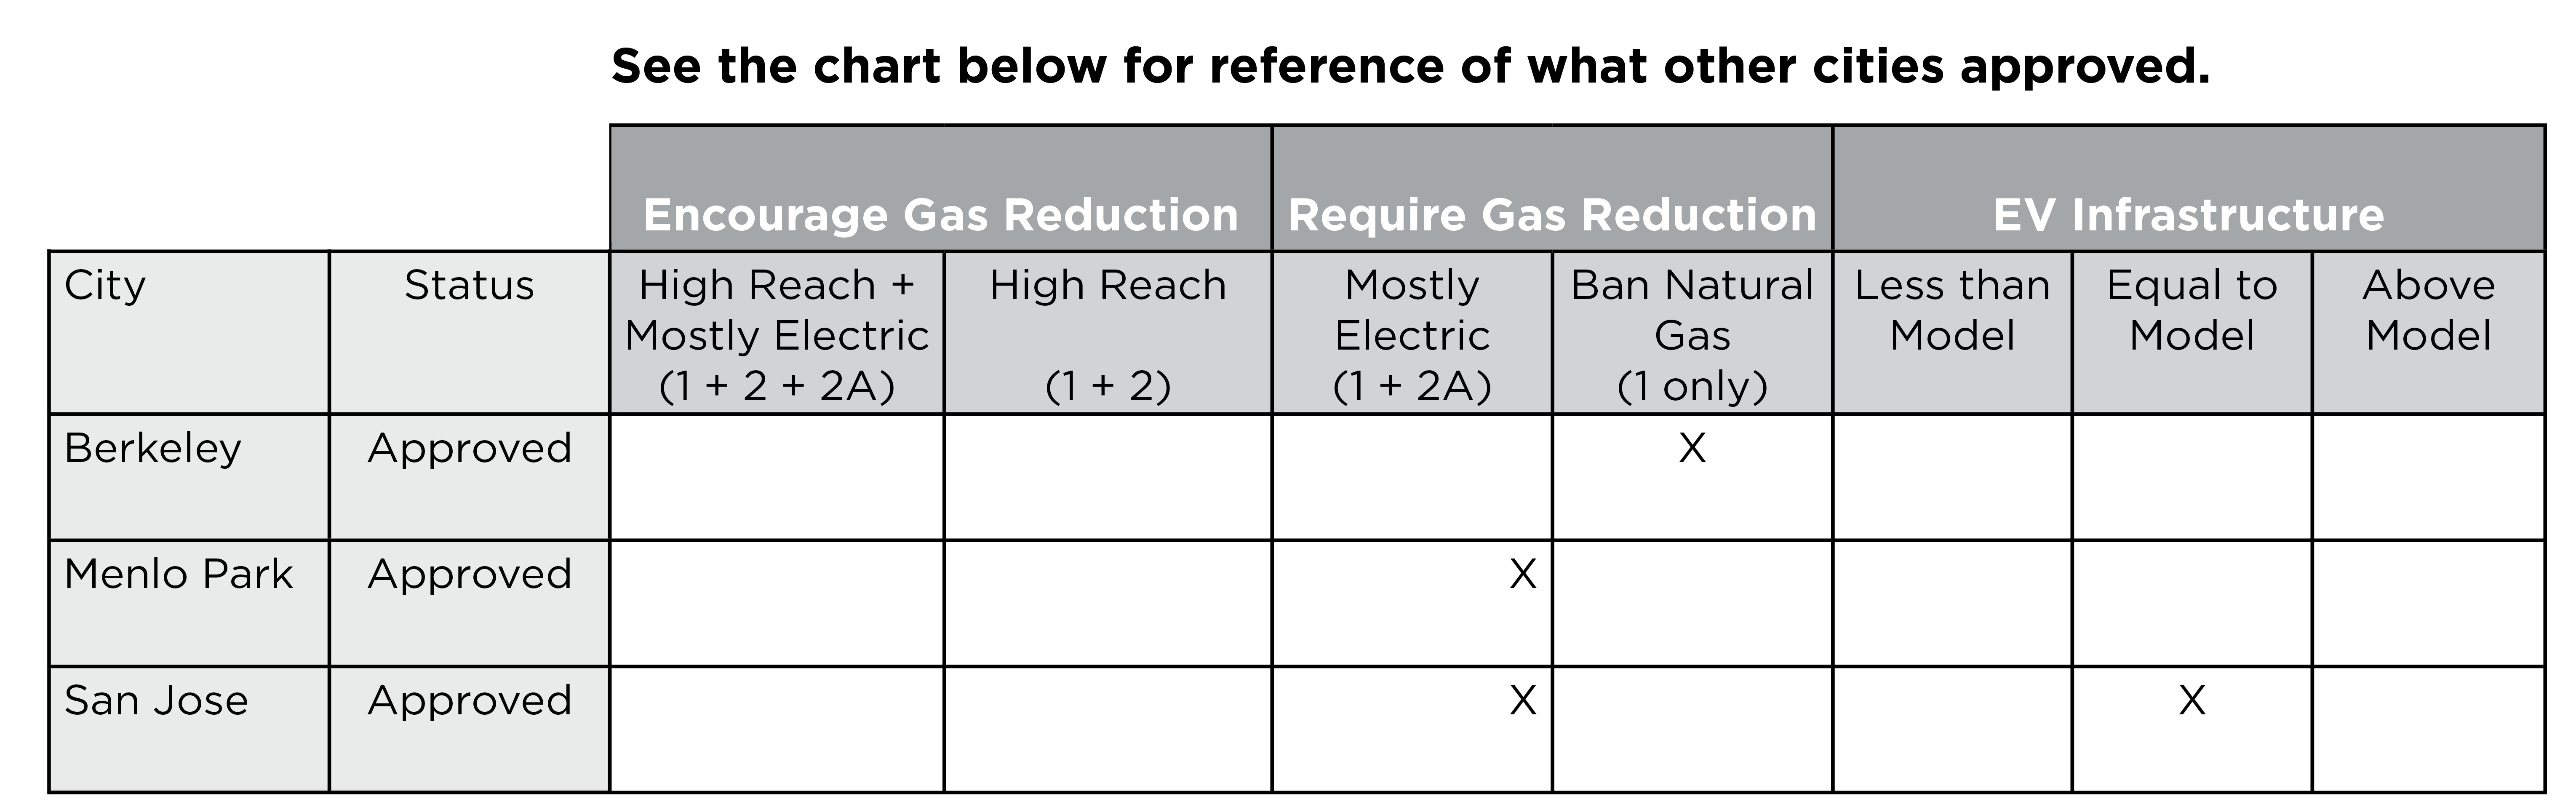 for assistance reading this table please contact info@svcleanenergy.org